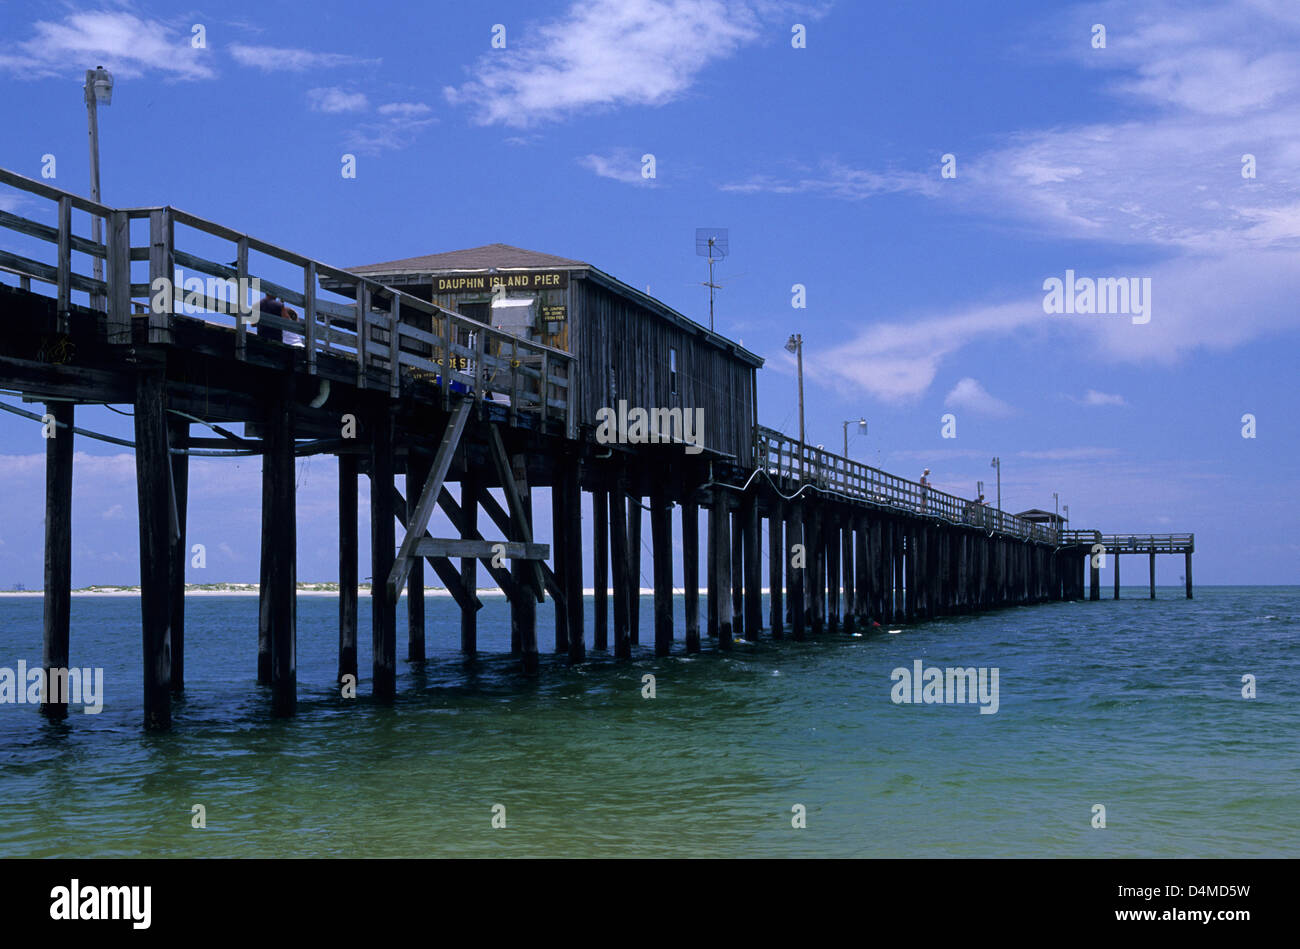 Dauphin island pier dauphin island alabama stock photo for Dauphin island fishing pier